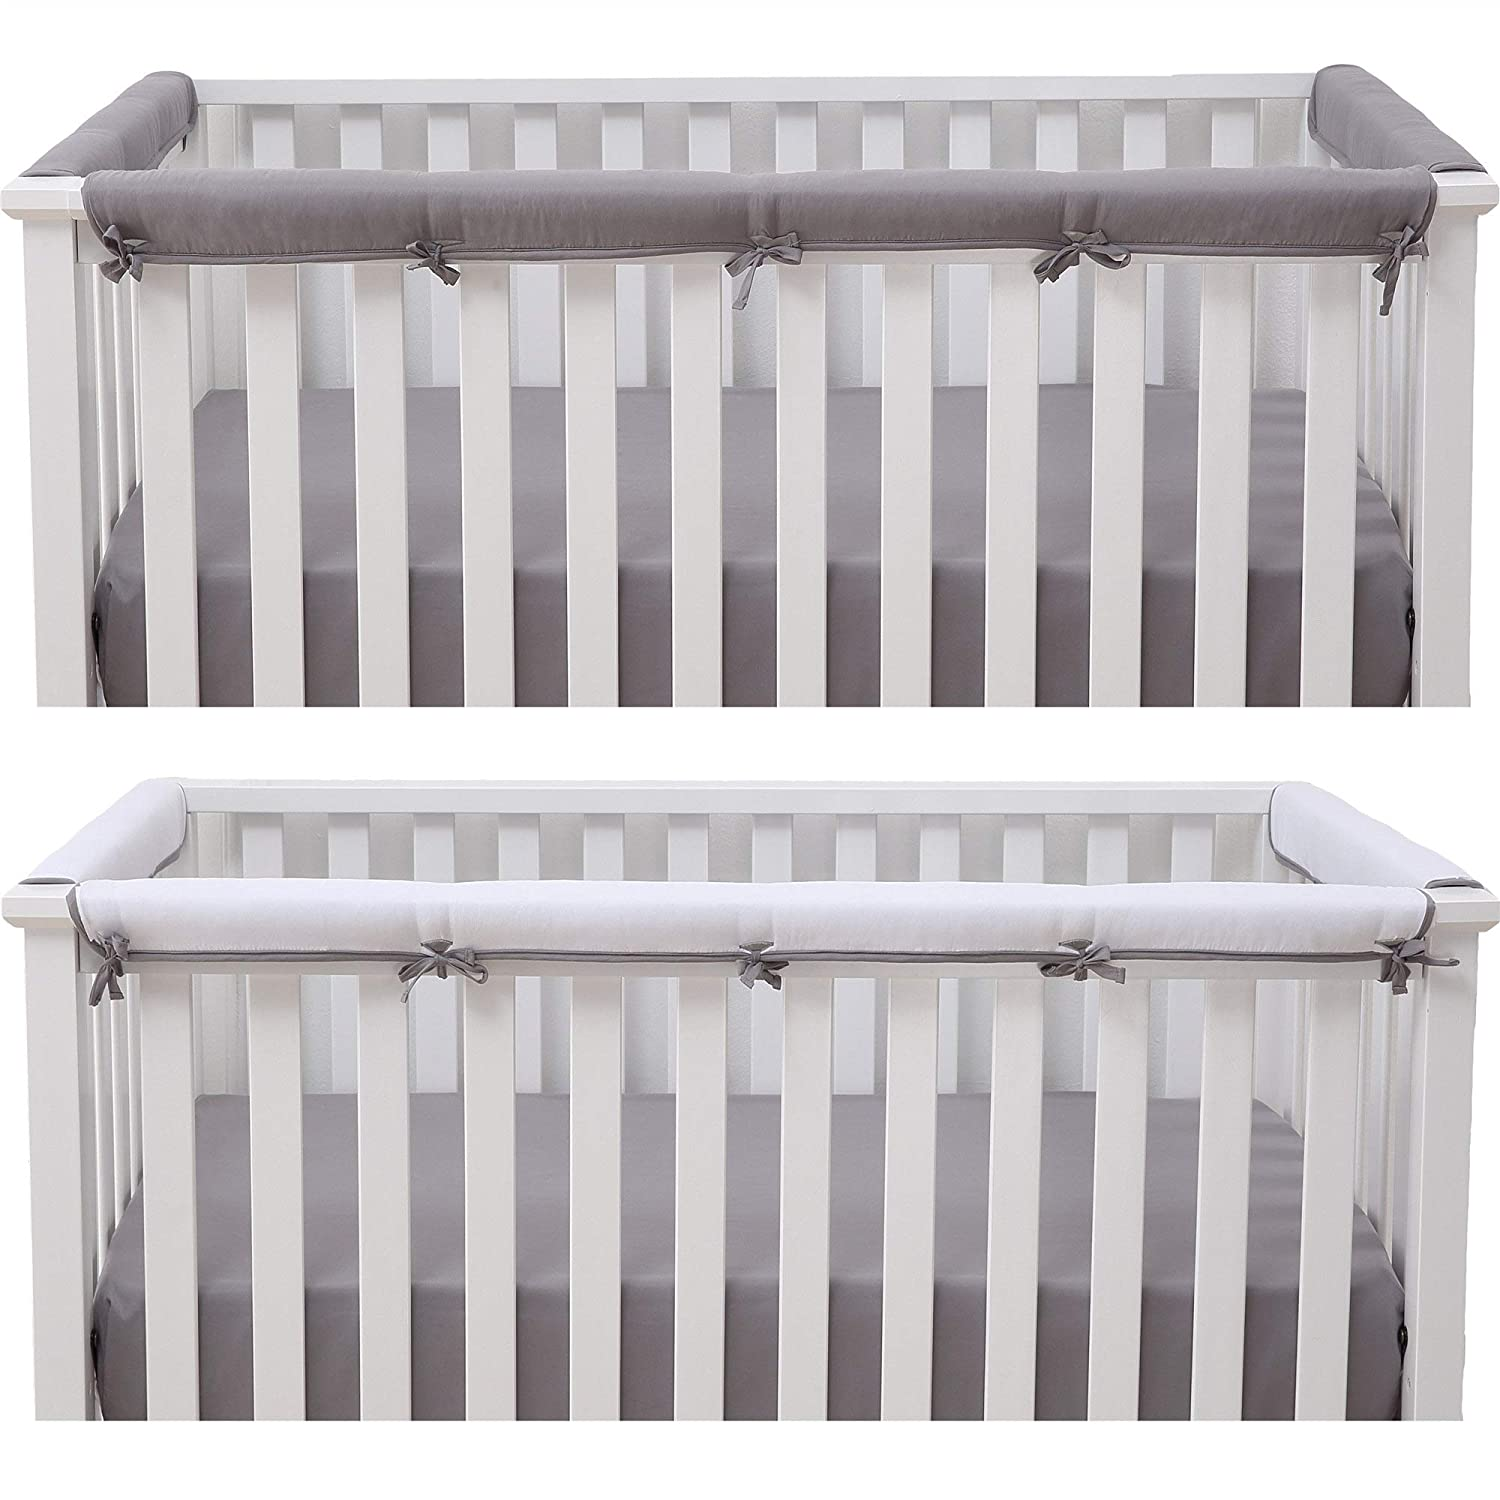 Belsden Baby Safe Crib Rail Cover 3 Pack Set for 1 Long and 2 Side Rails, Reversible Breathable Padded Crib Teething Guard Protector for Boys Girls, Measure up to 8 inches Around, Gray and White Color